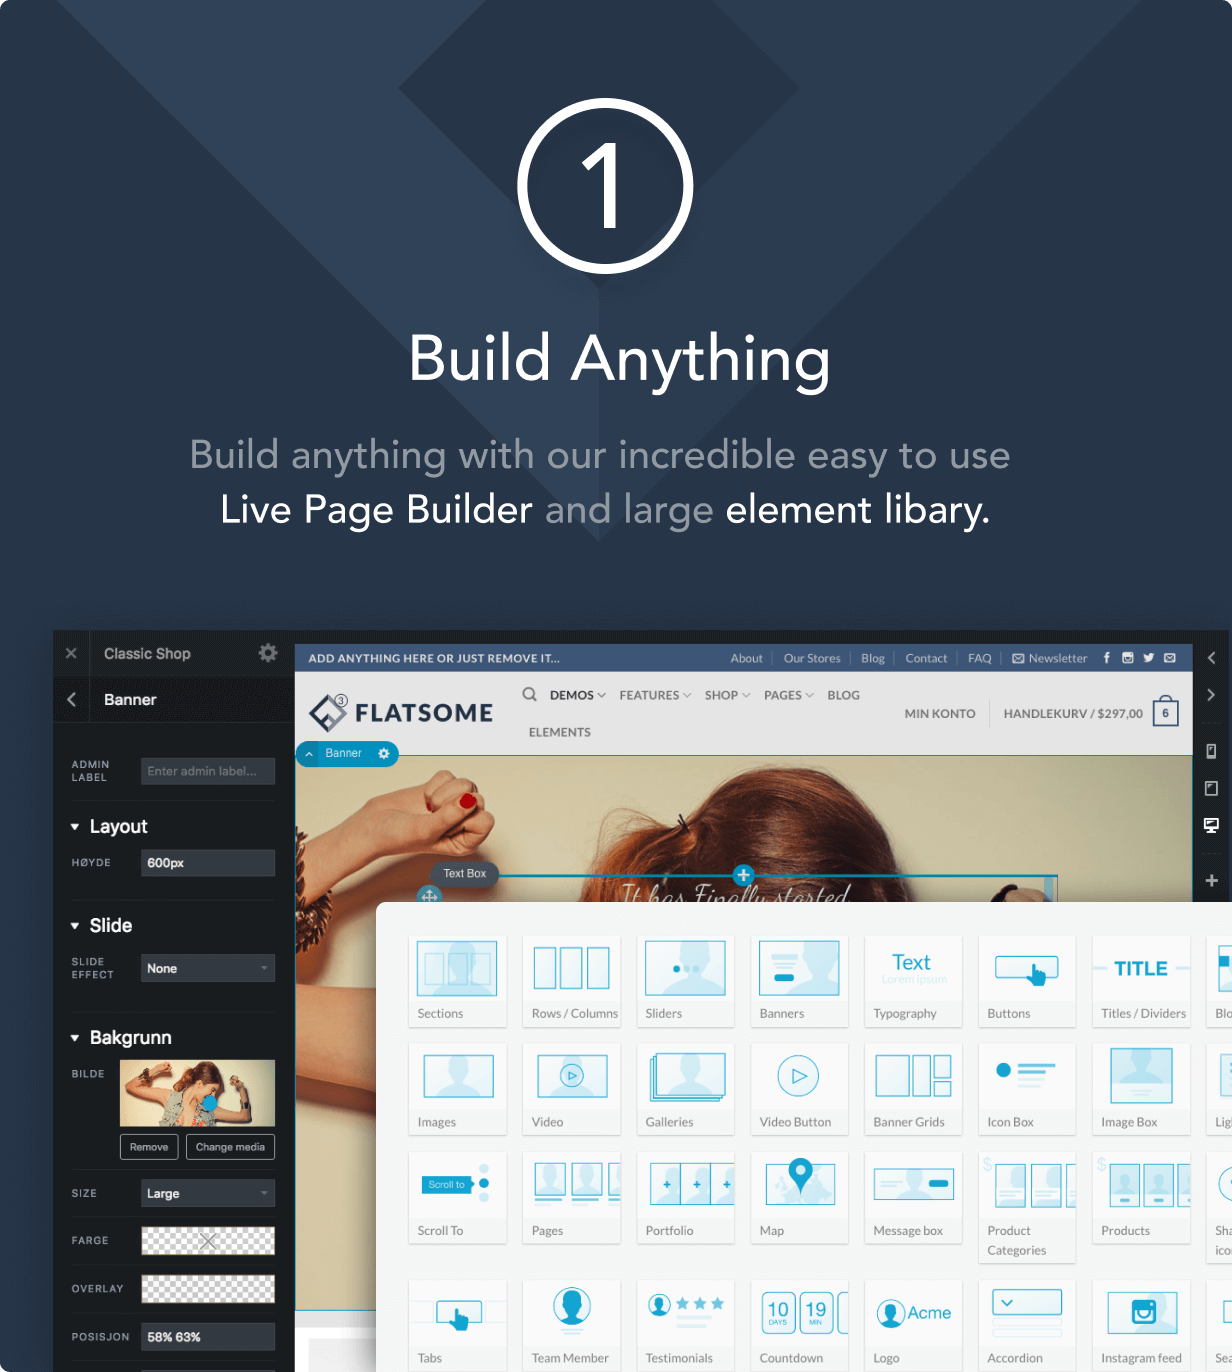 1 buid anything - Flatsome | Multi-Purpose Responsive WooCommerce Theme